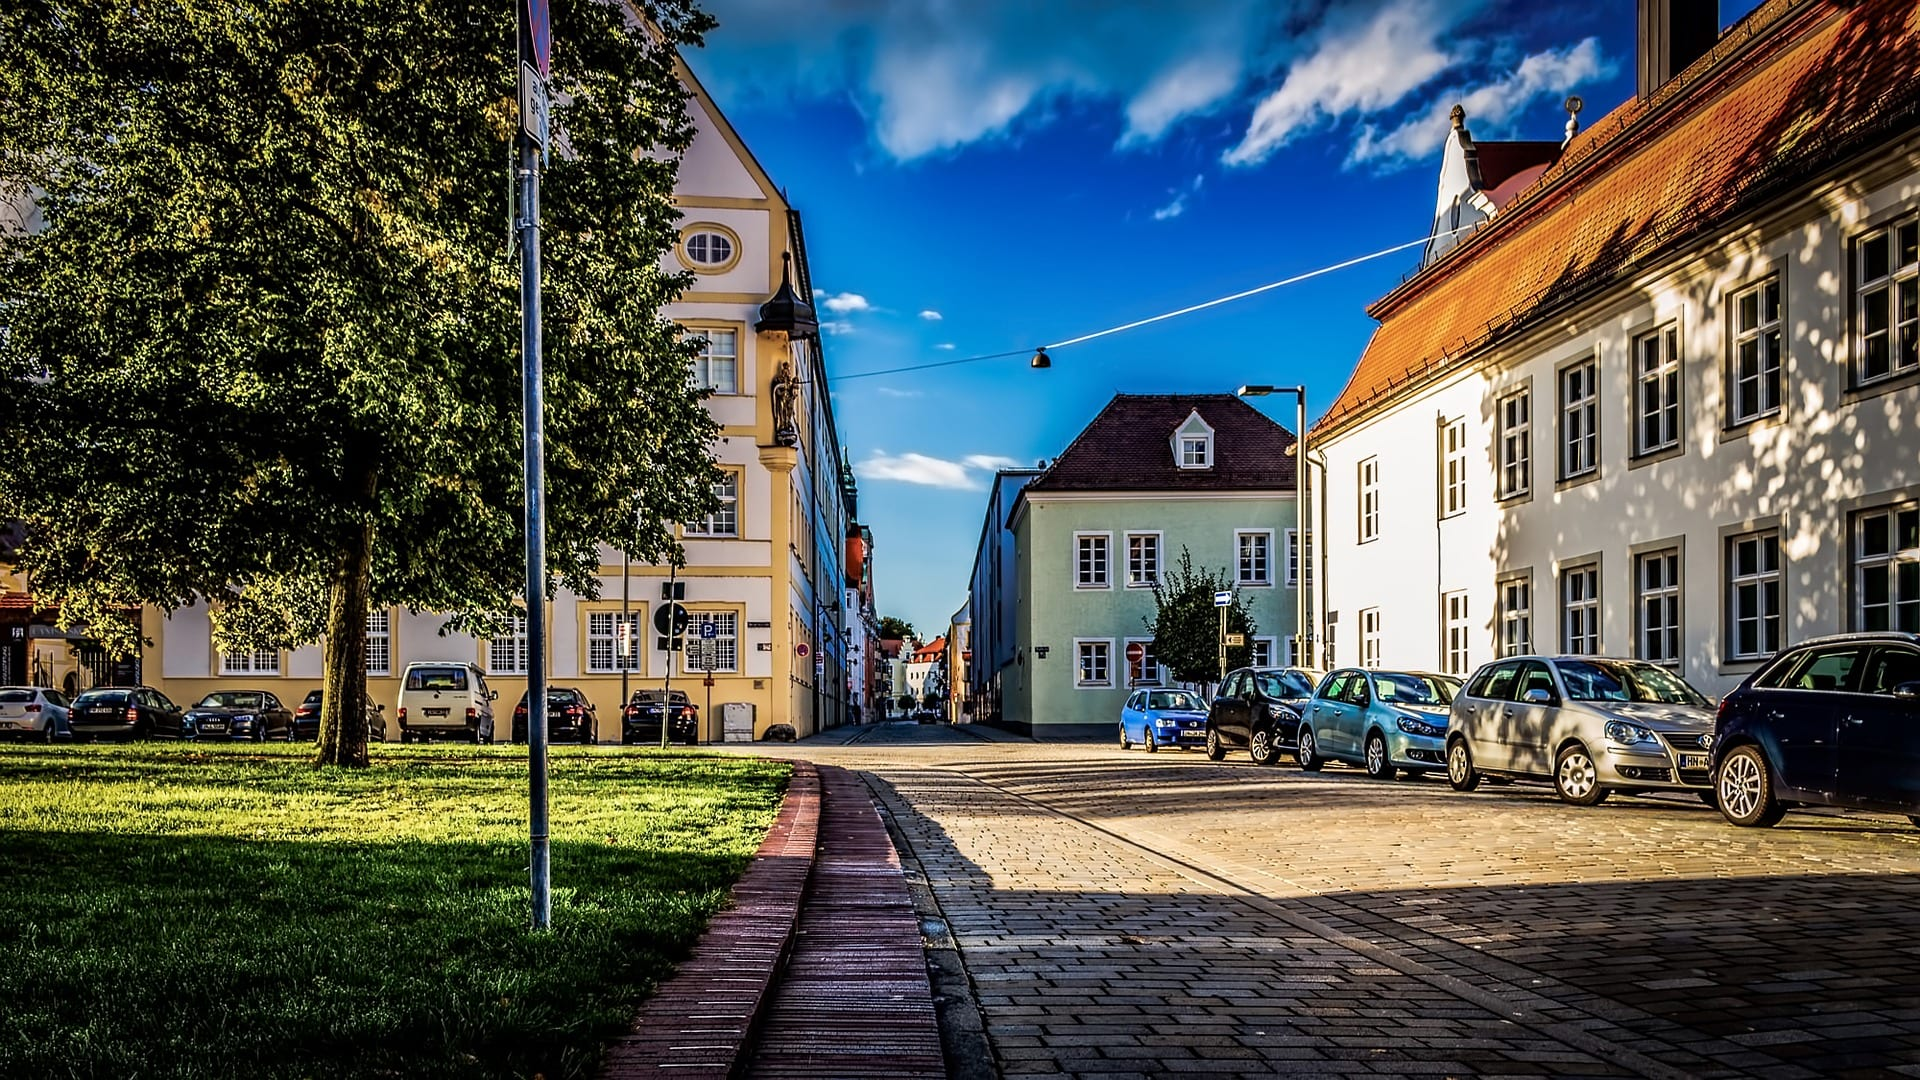 The streets of Ingolstadt Germany